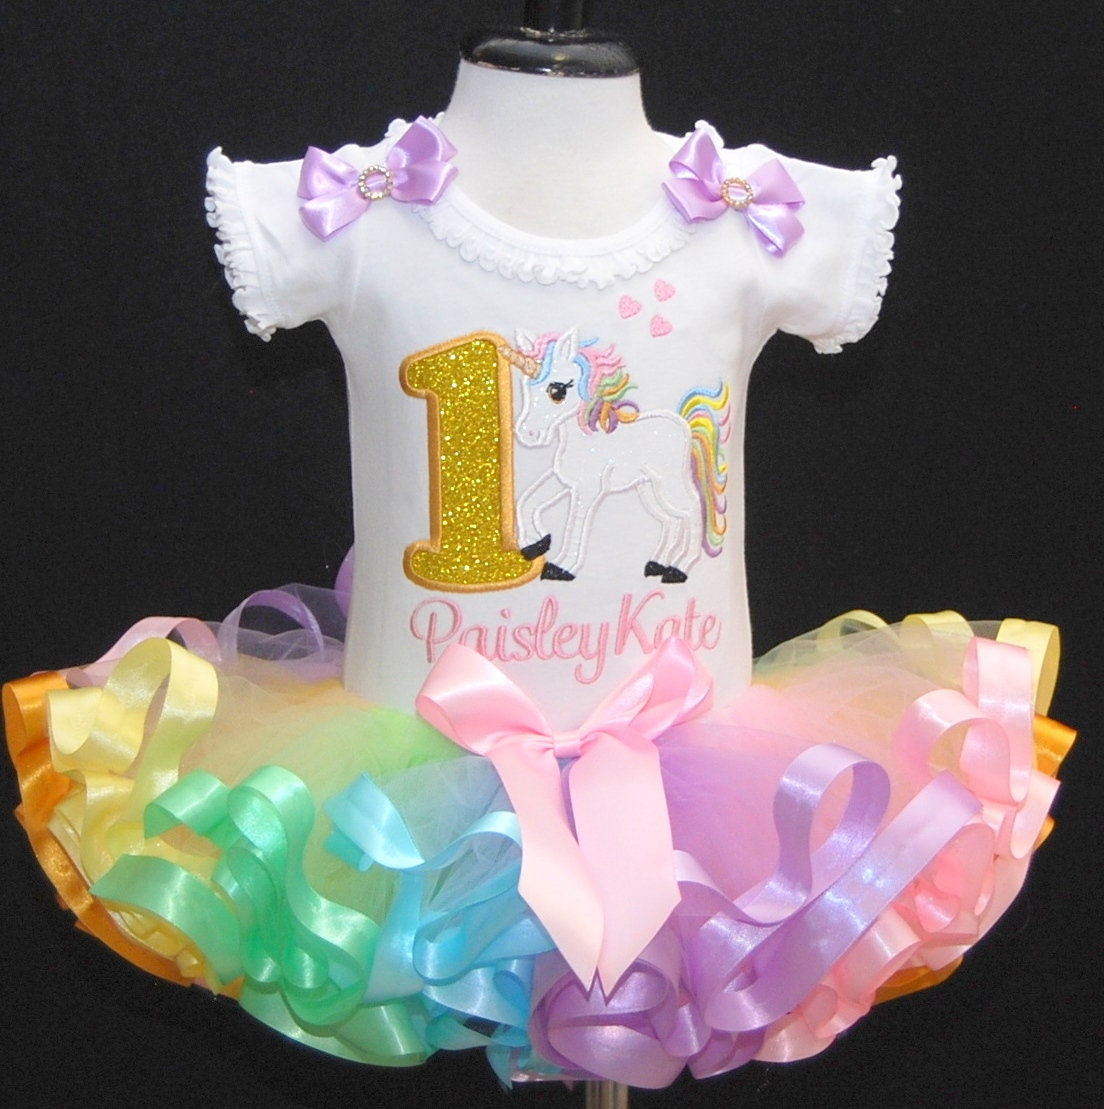 unicorn 1st birthday outfit, unicorn birthday outfit, first birthday unicorn outfit, unicorn headband, smash cake outfit girl,rainbow tutu